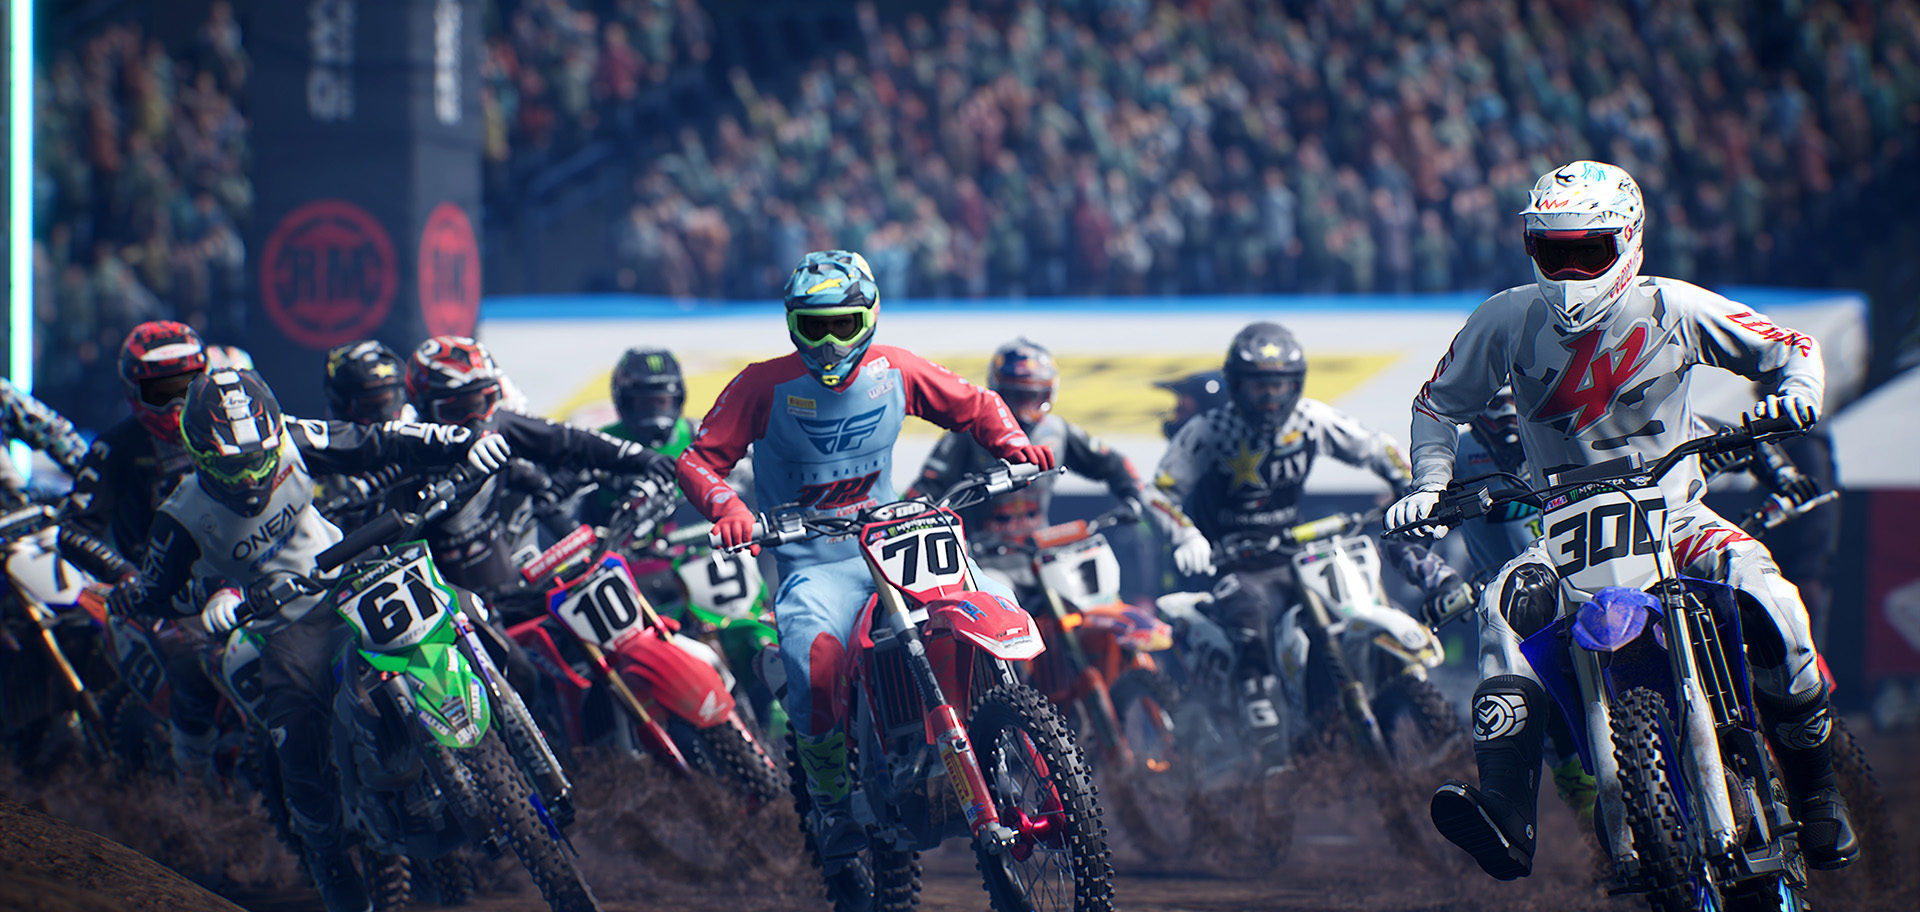 Supercross 4 DLC Adds 2-Stroke (250) bikes, Indianapolis 2020 track